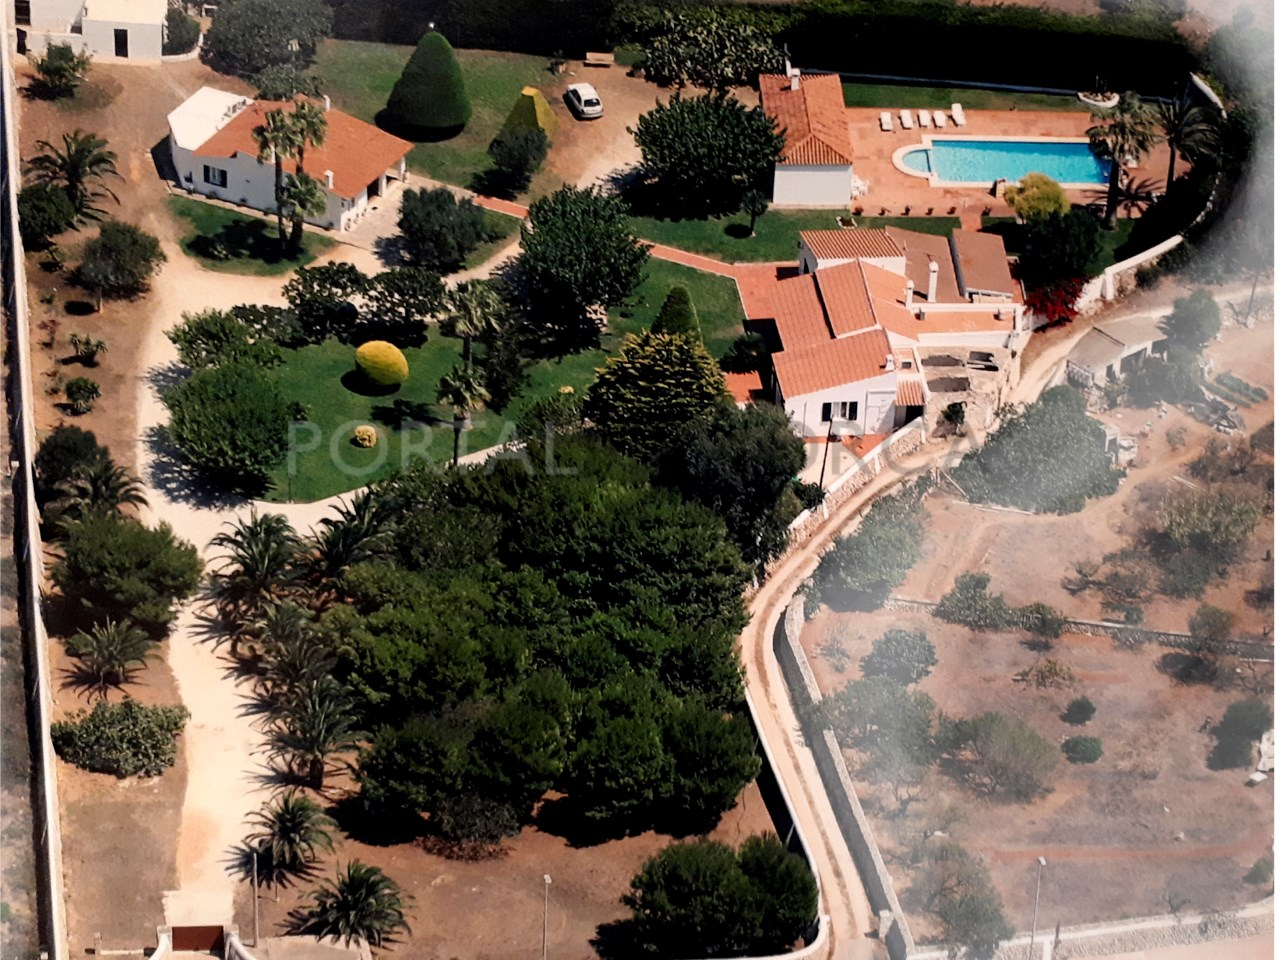 Villa for sale in Ciutadella- aerial view